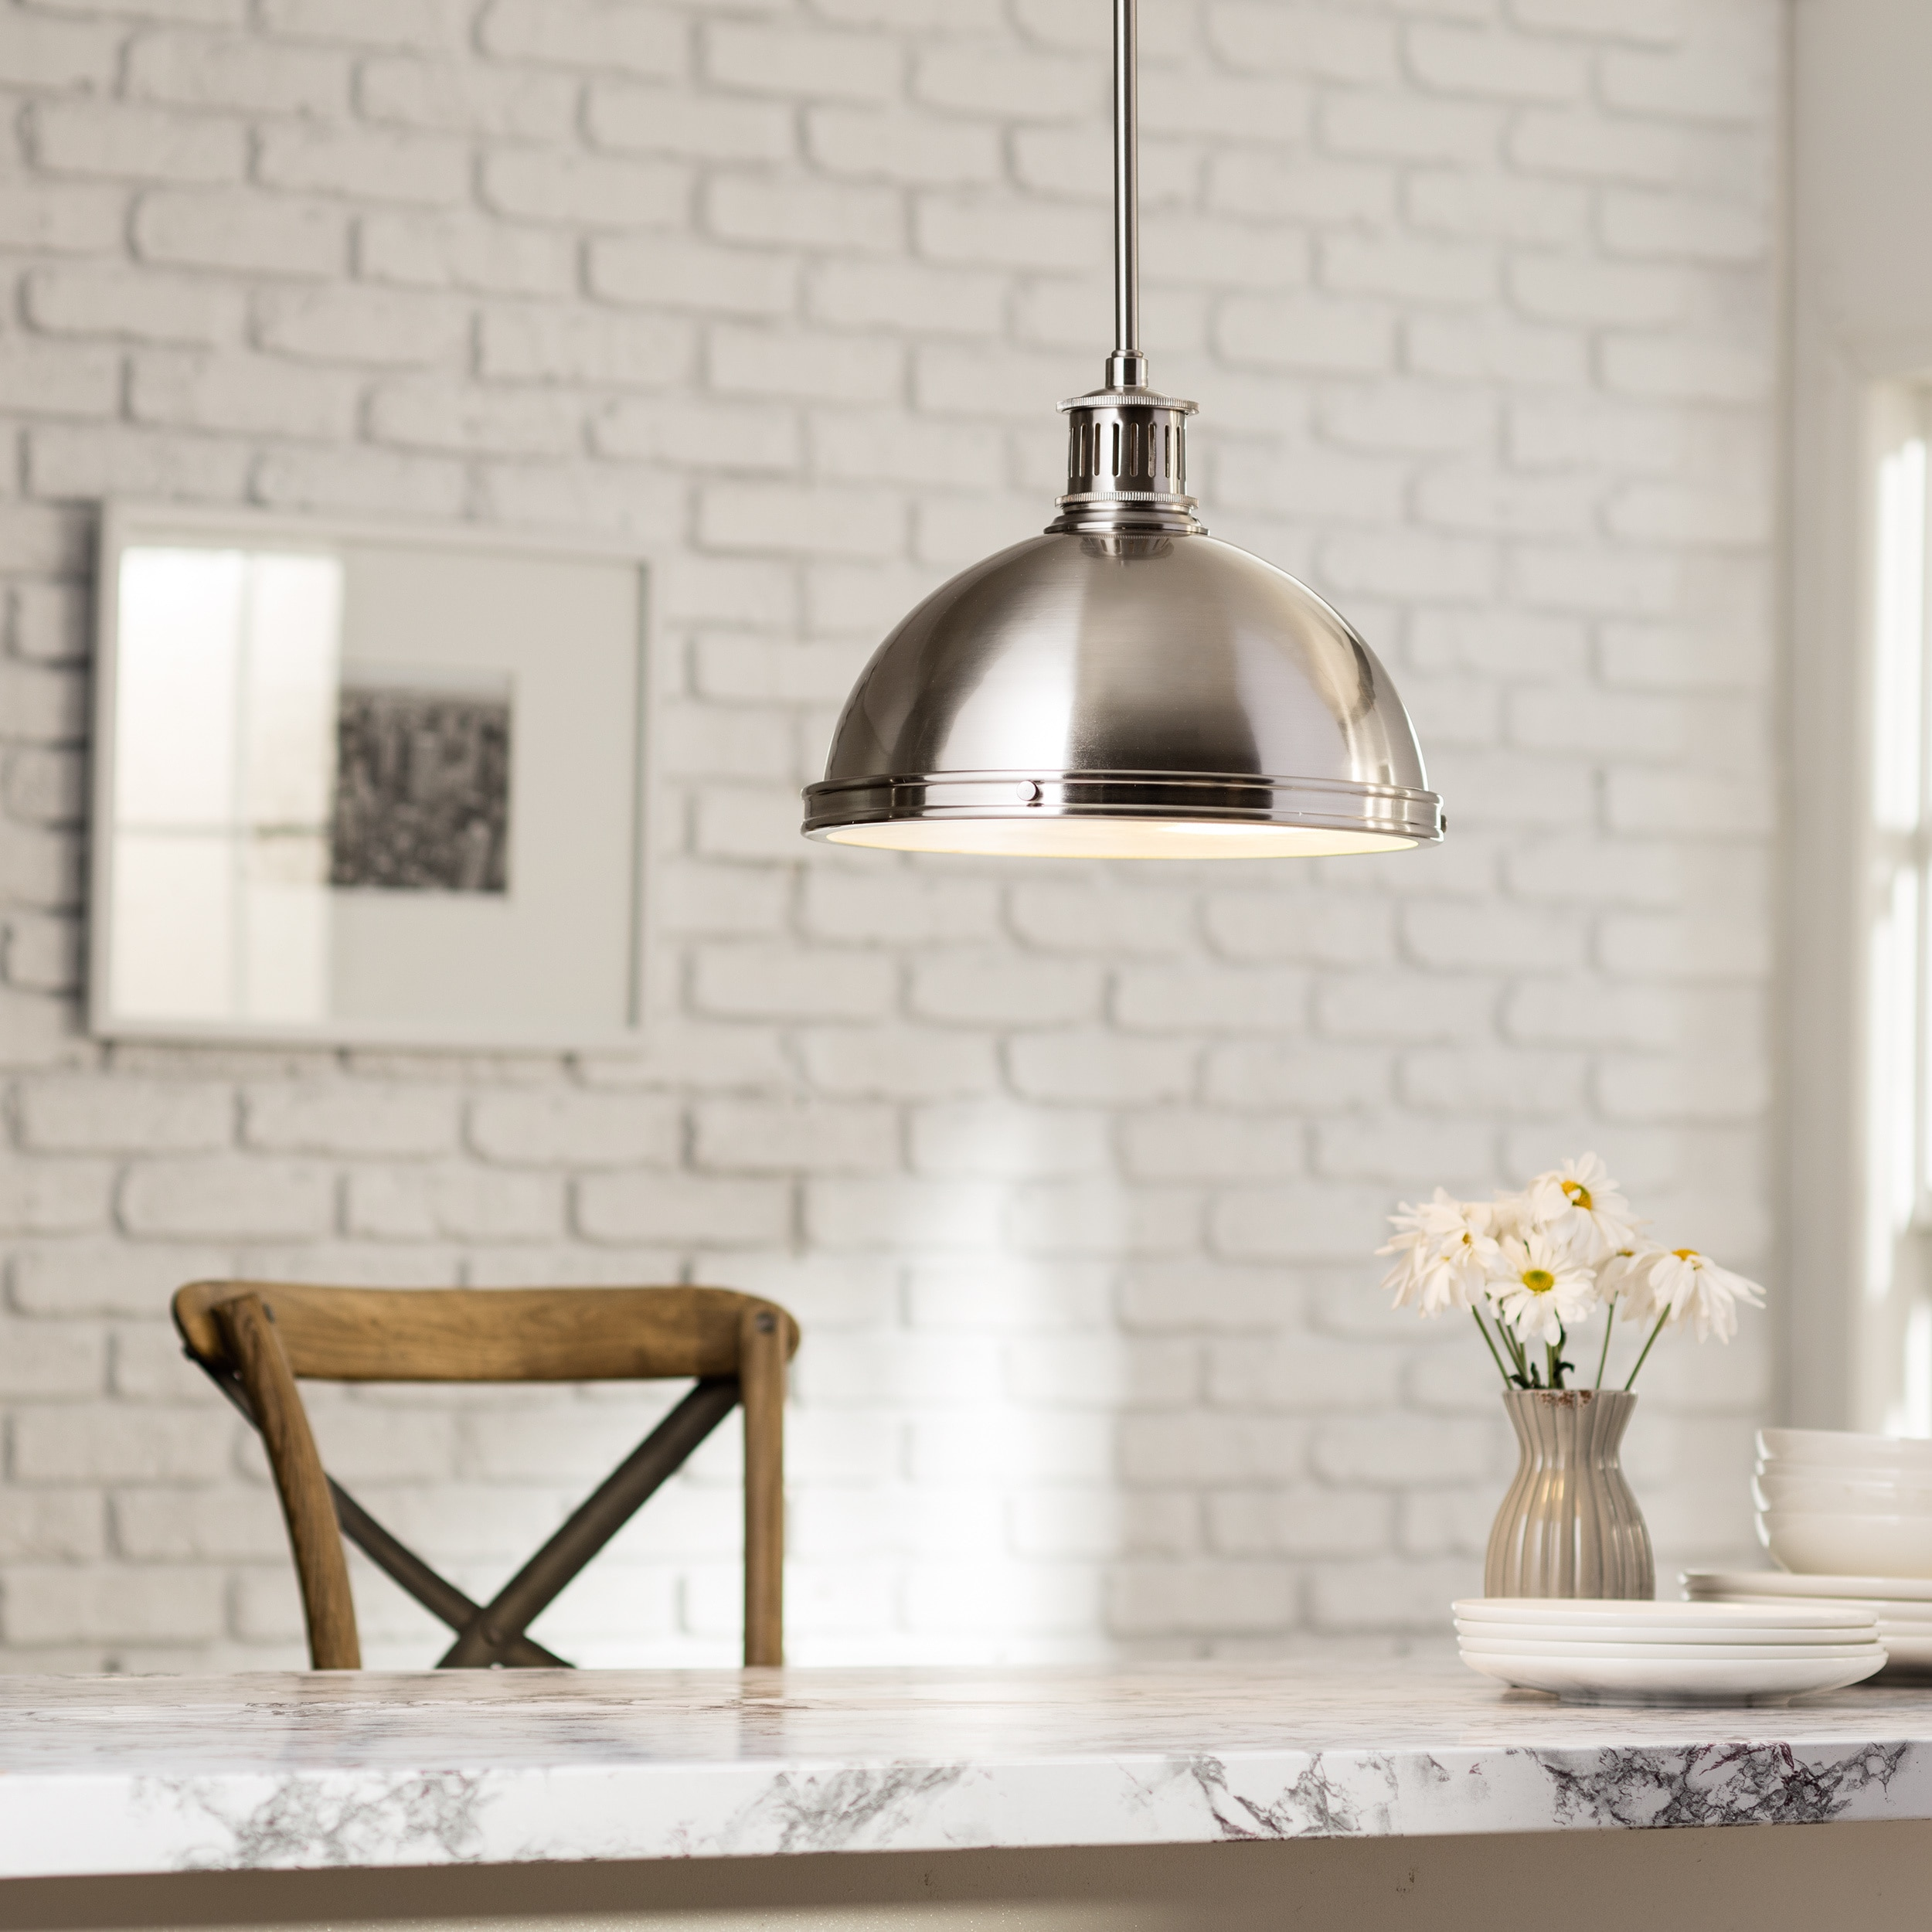 Sea Gull Lighting Pratt Street Metal 2-light Brushed Nickel Pendant with Glass Diffuser & Sea Gull Lighting Pratt Street Metal 2-light Brushed Nickel Pendant ...